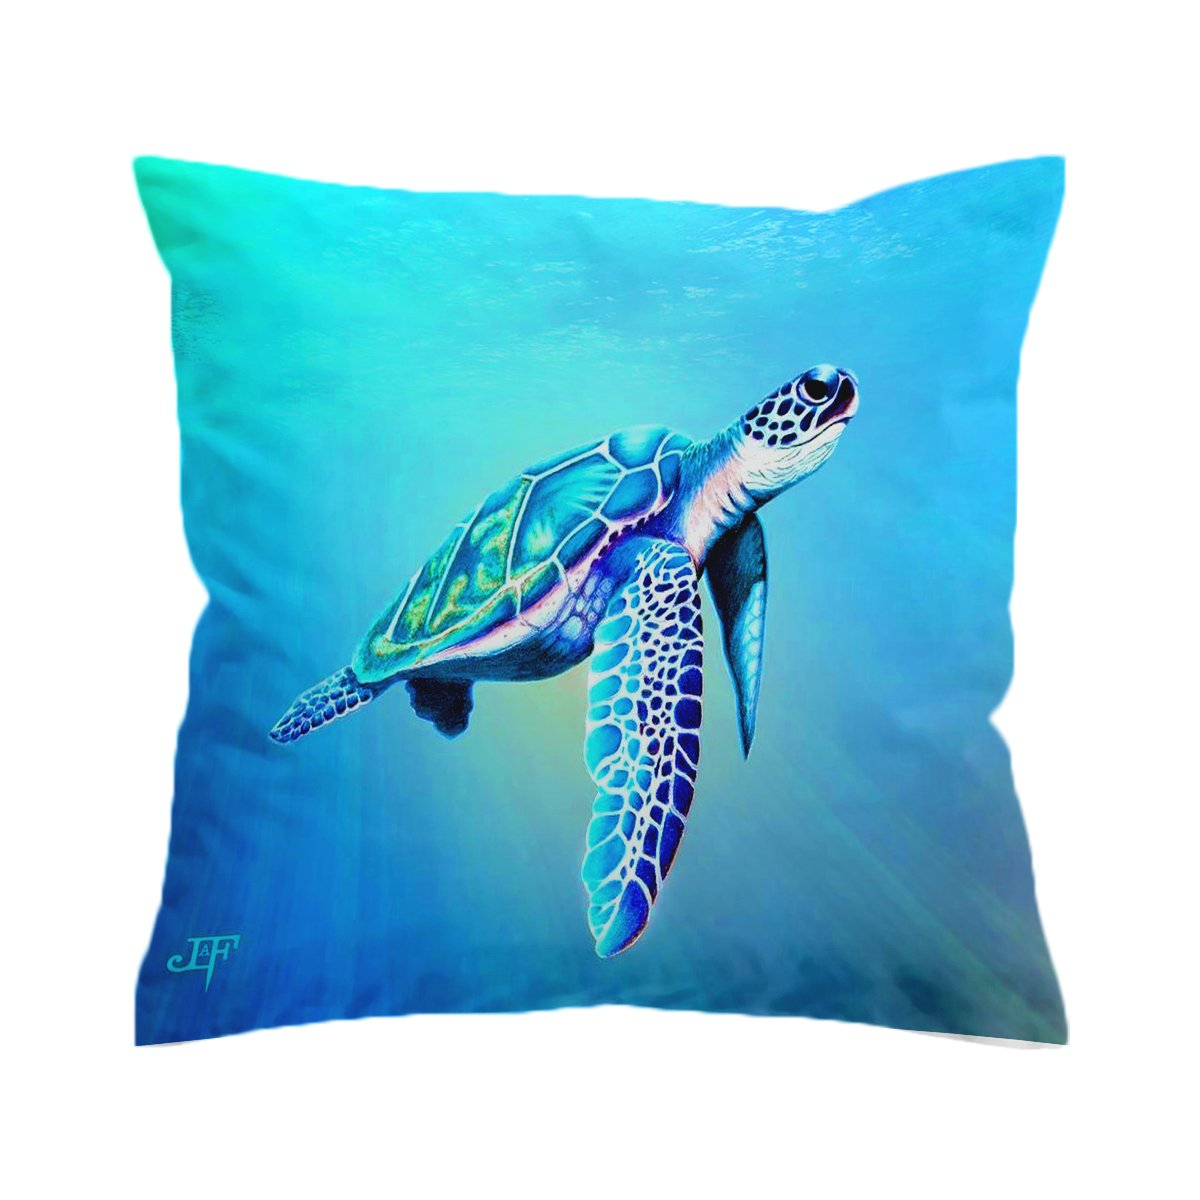 Turquoise Sea Turtle Pillow Cover-Coastal Passion